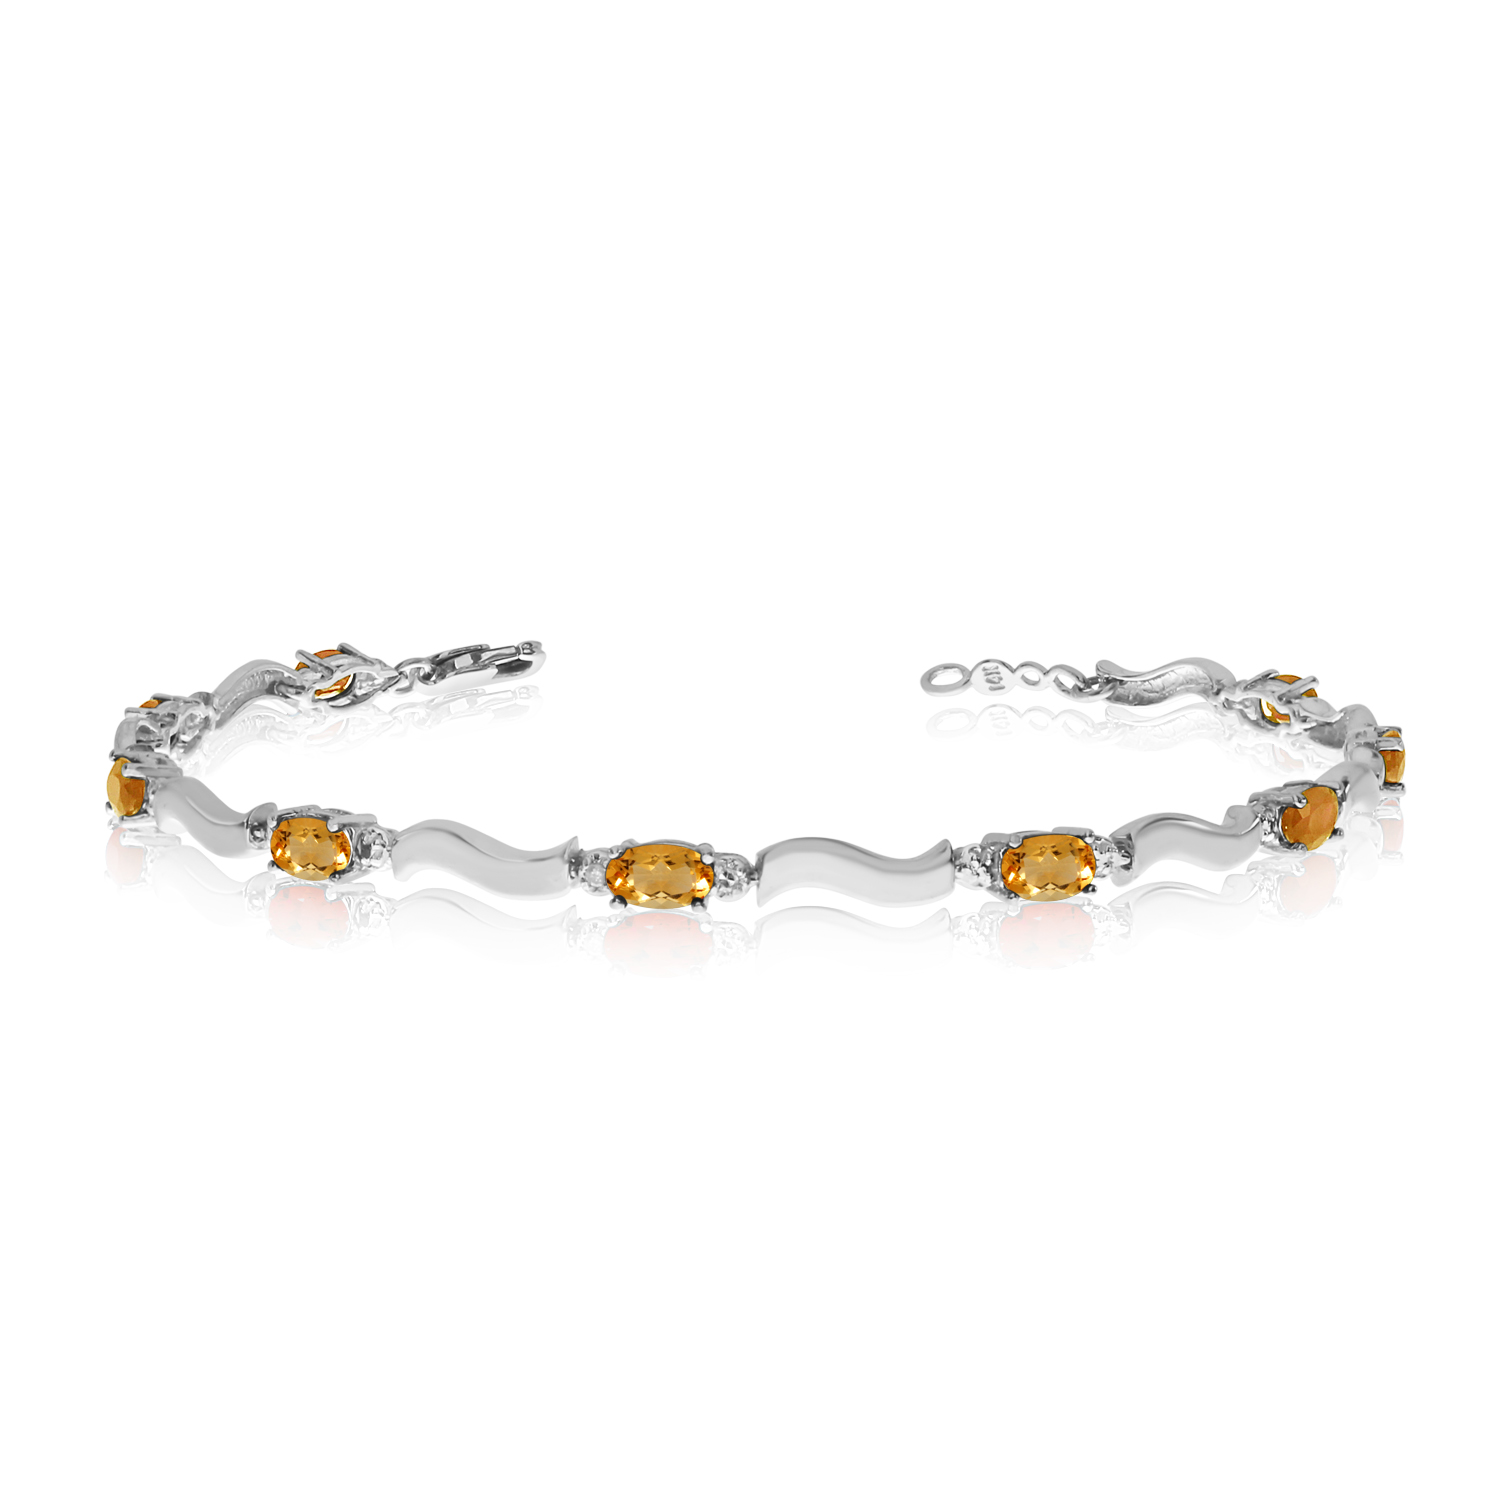 14K White Gold Oval Citrine and Diamond Bracelet by